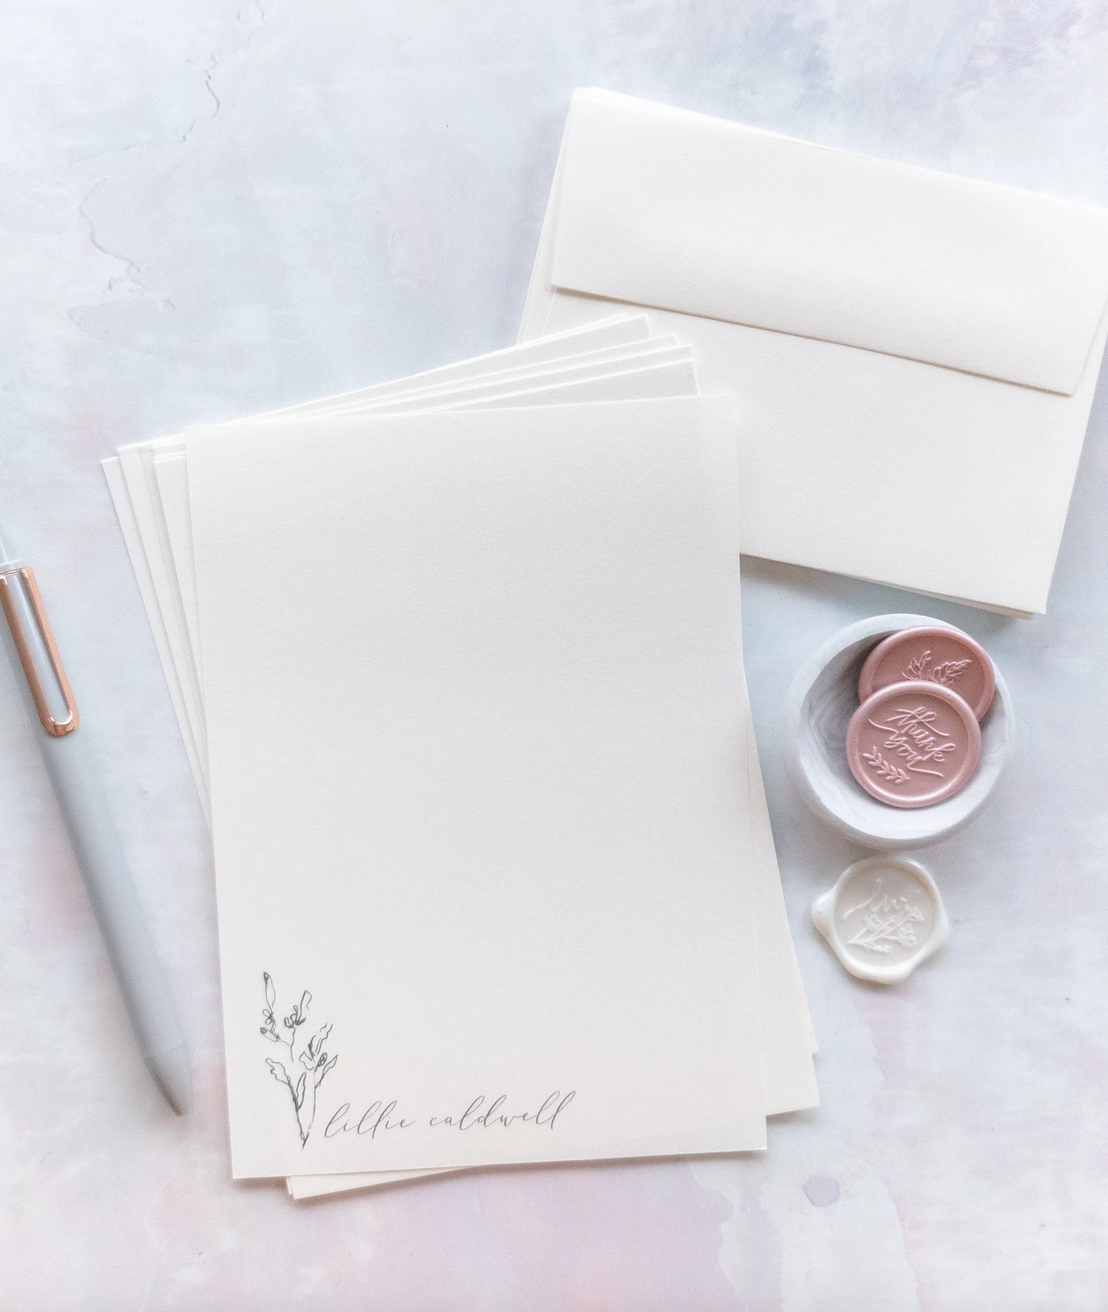 Cream colored stationary with white pen and pink and white wax buttons